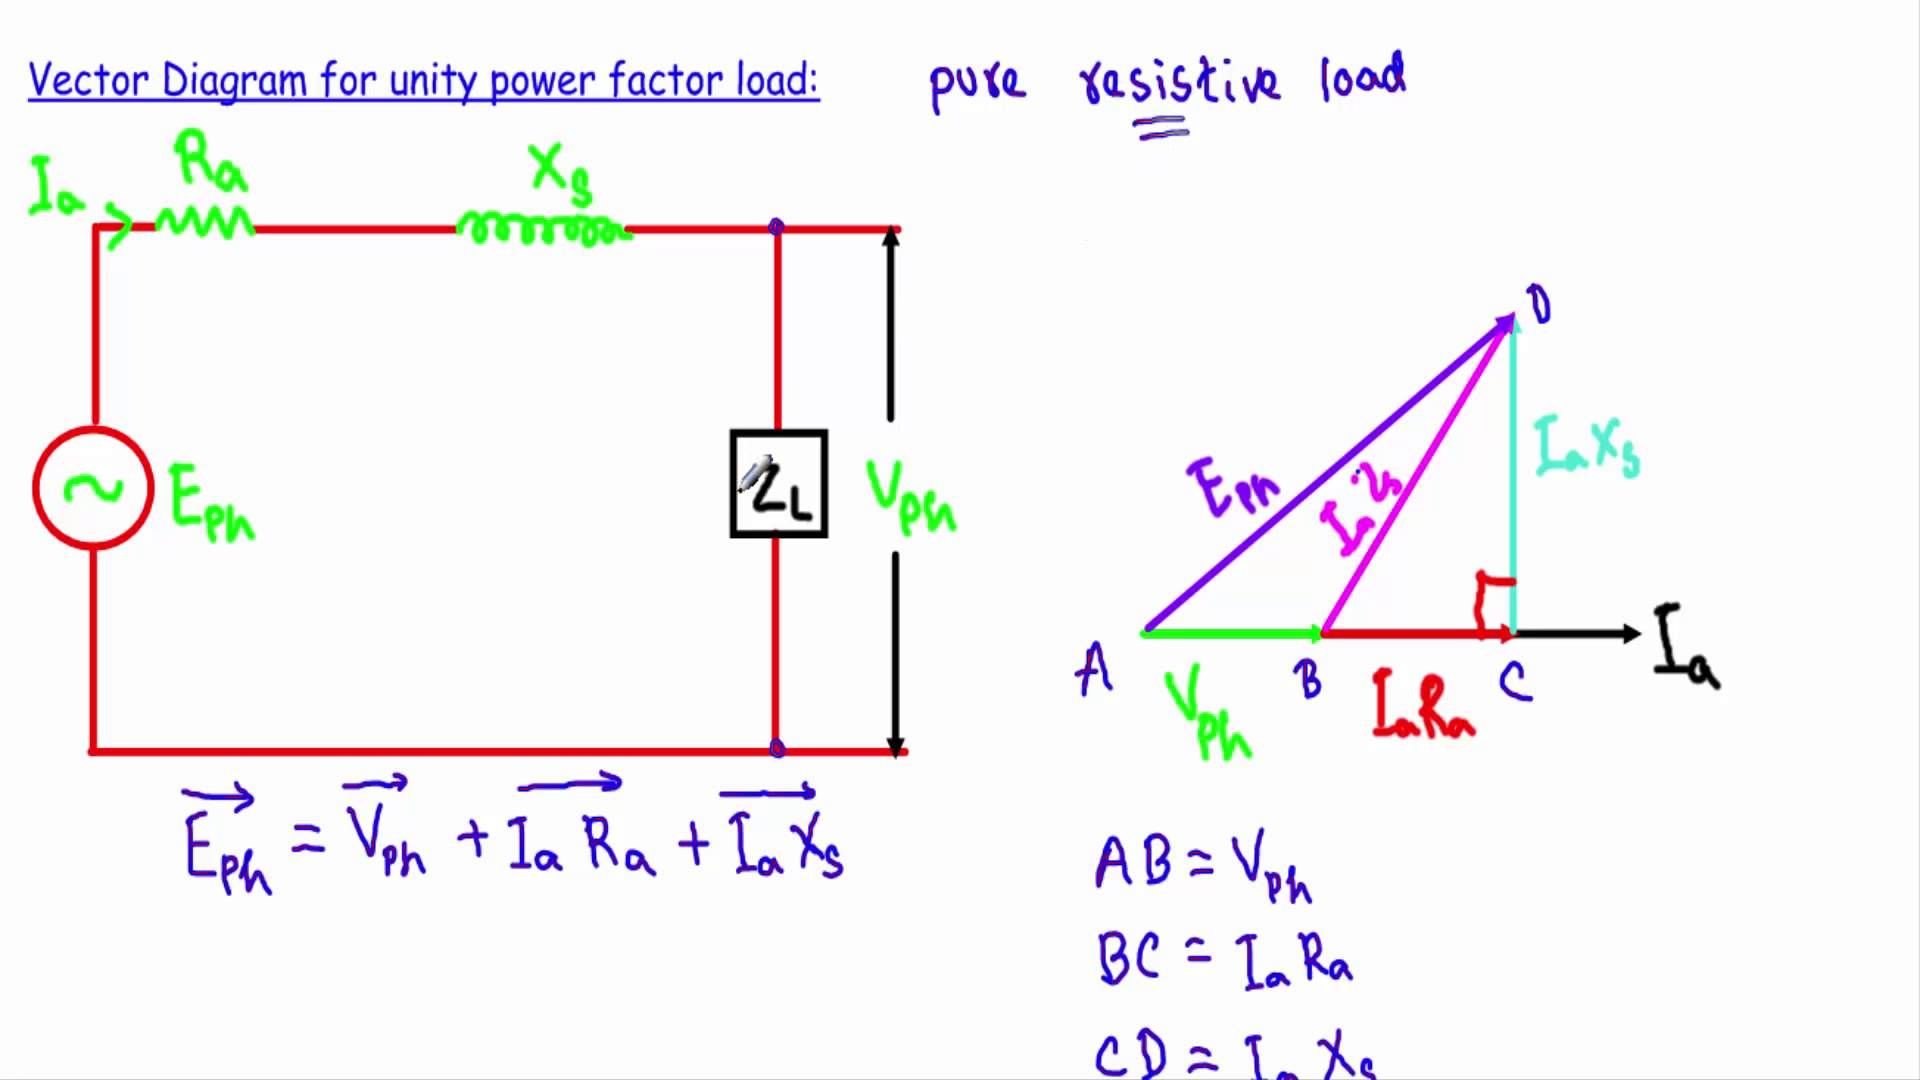 Alternator Phasor Diagram With Unity Power Factor Load News To Go Impedance Of Rlc Circuit From Electronics Forum Circuits